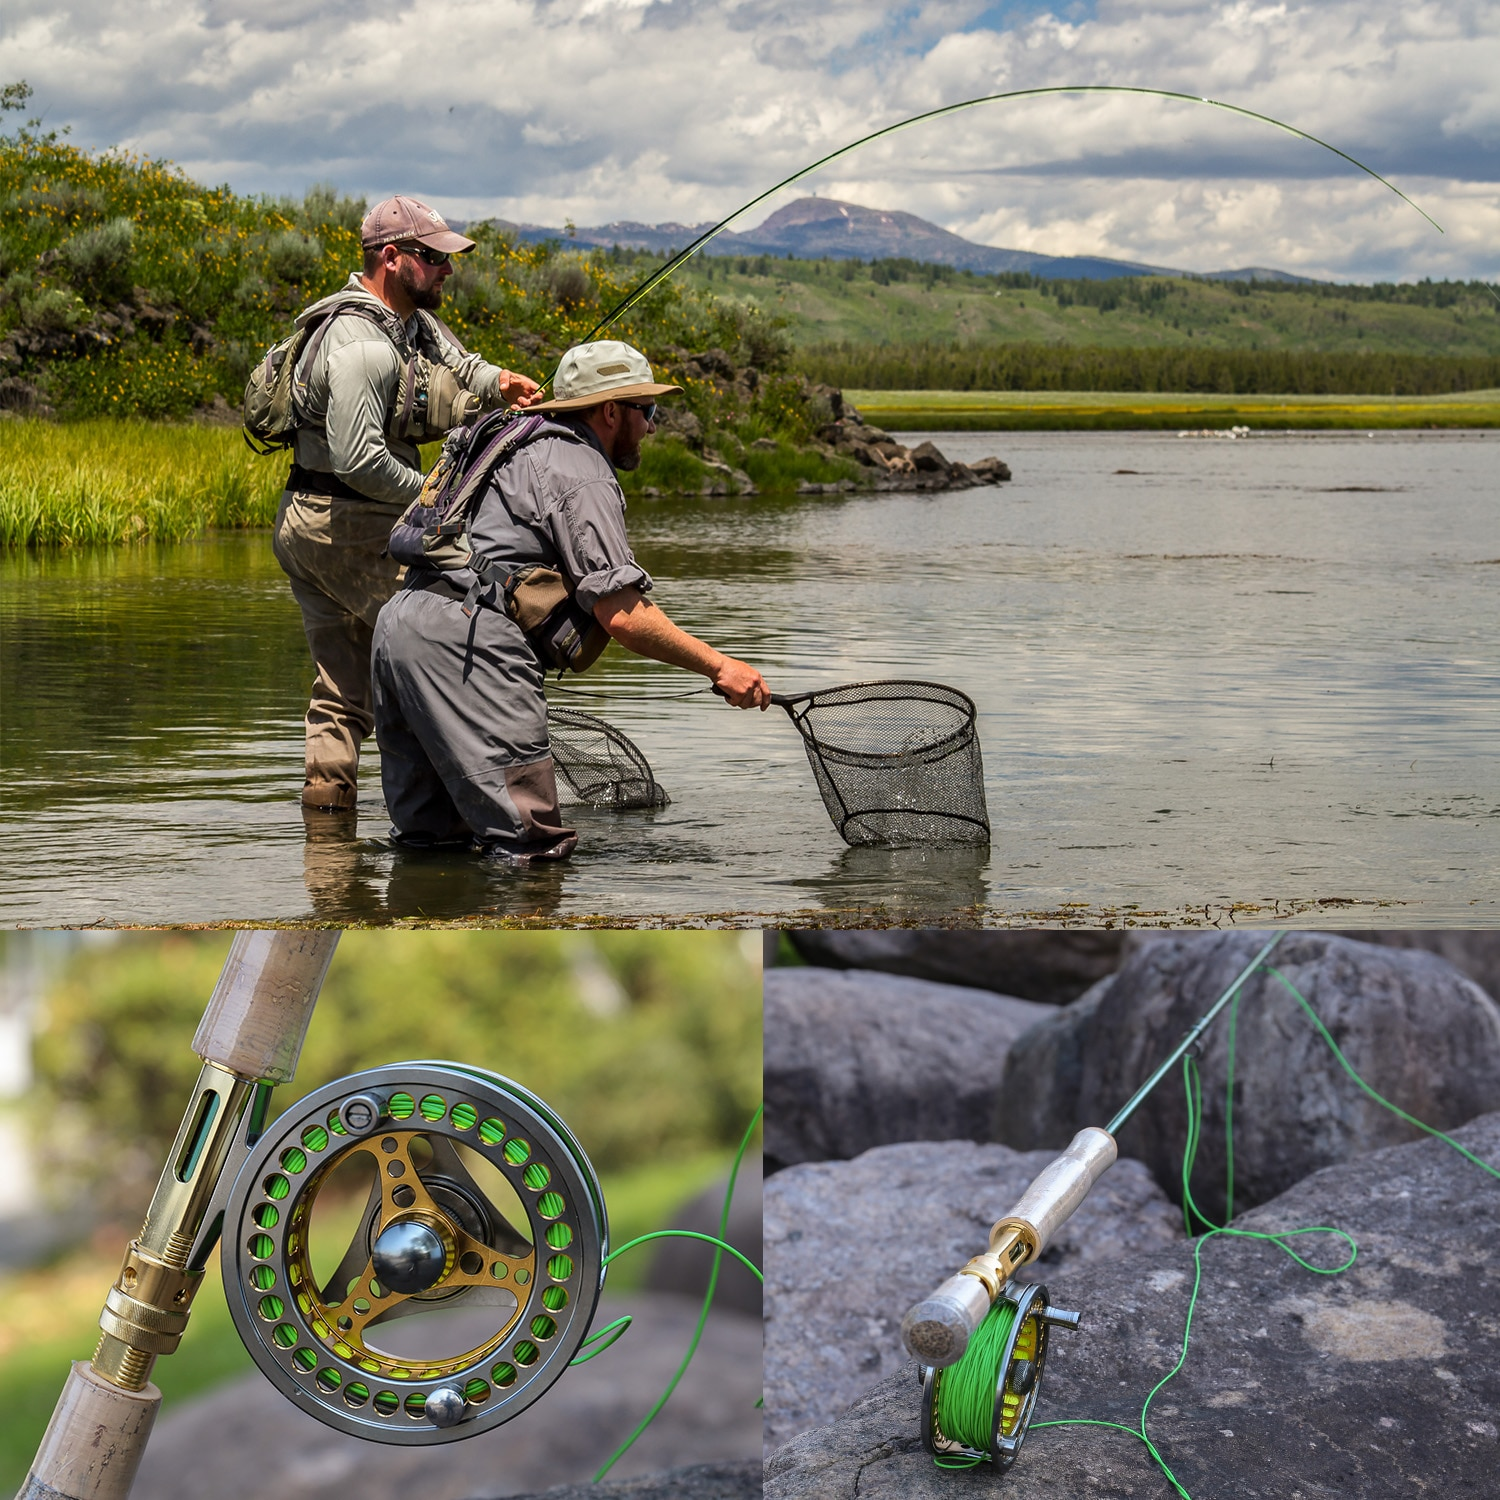 7/8 Fly Fishing Combo Portable 4 Sections Carbon Fiber Fishing Rod 2+1BB Fly Reel Line Lure Bag Full Accessories Set enlarge